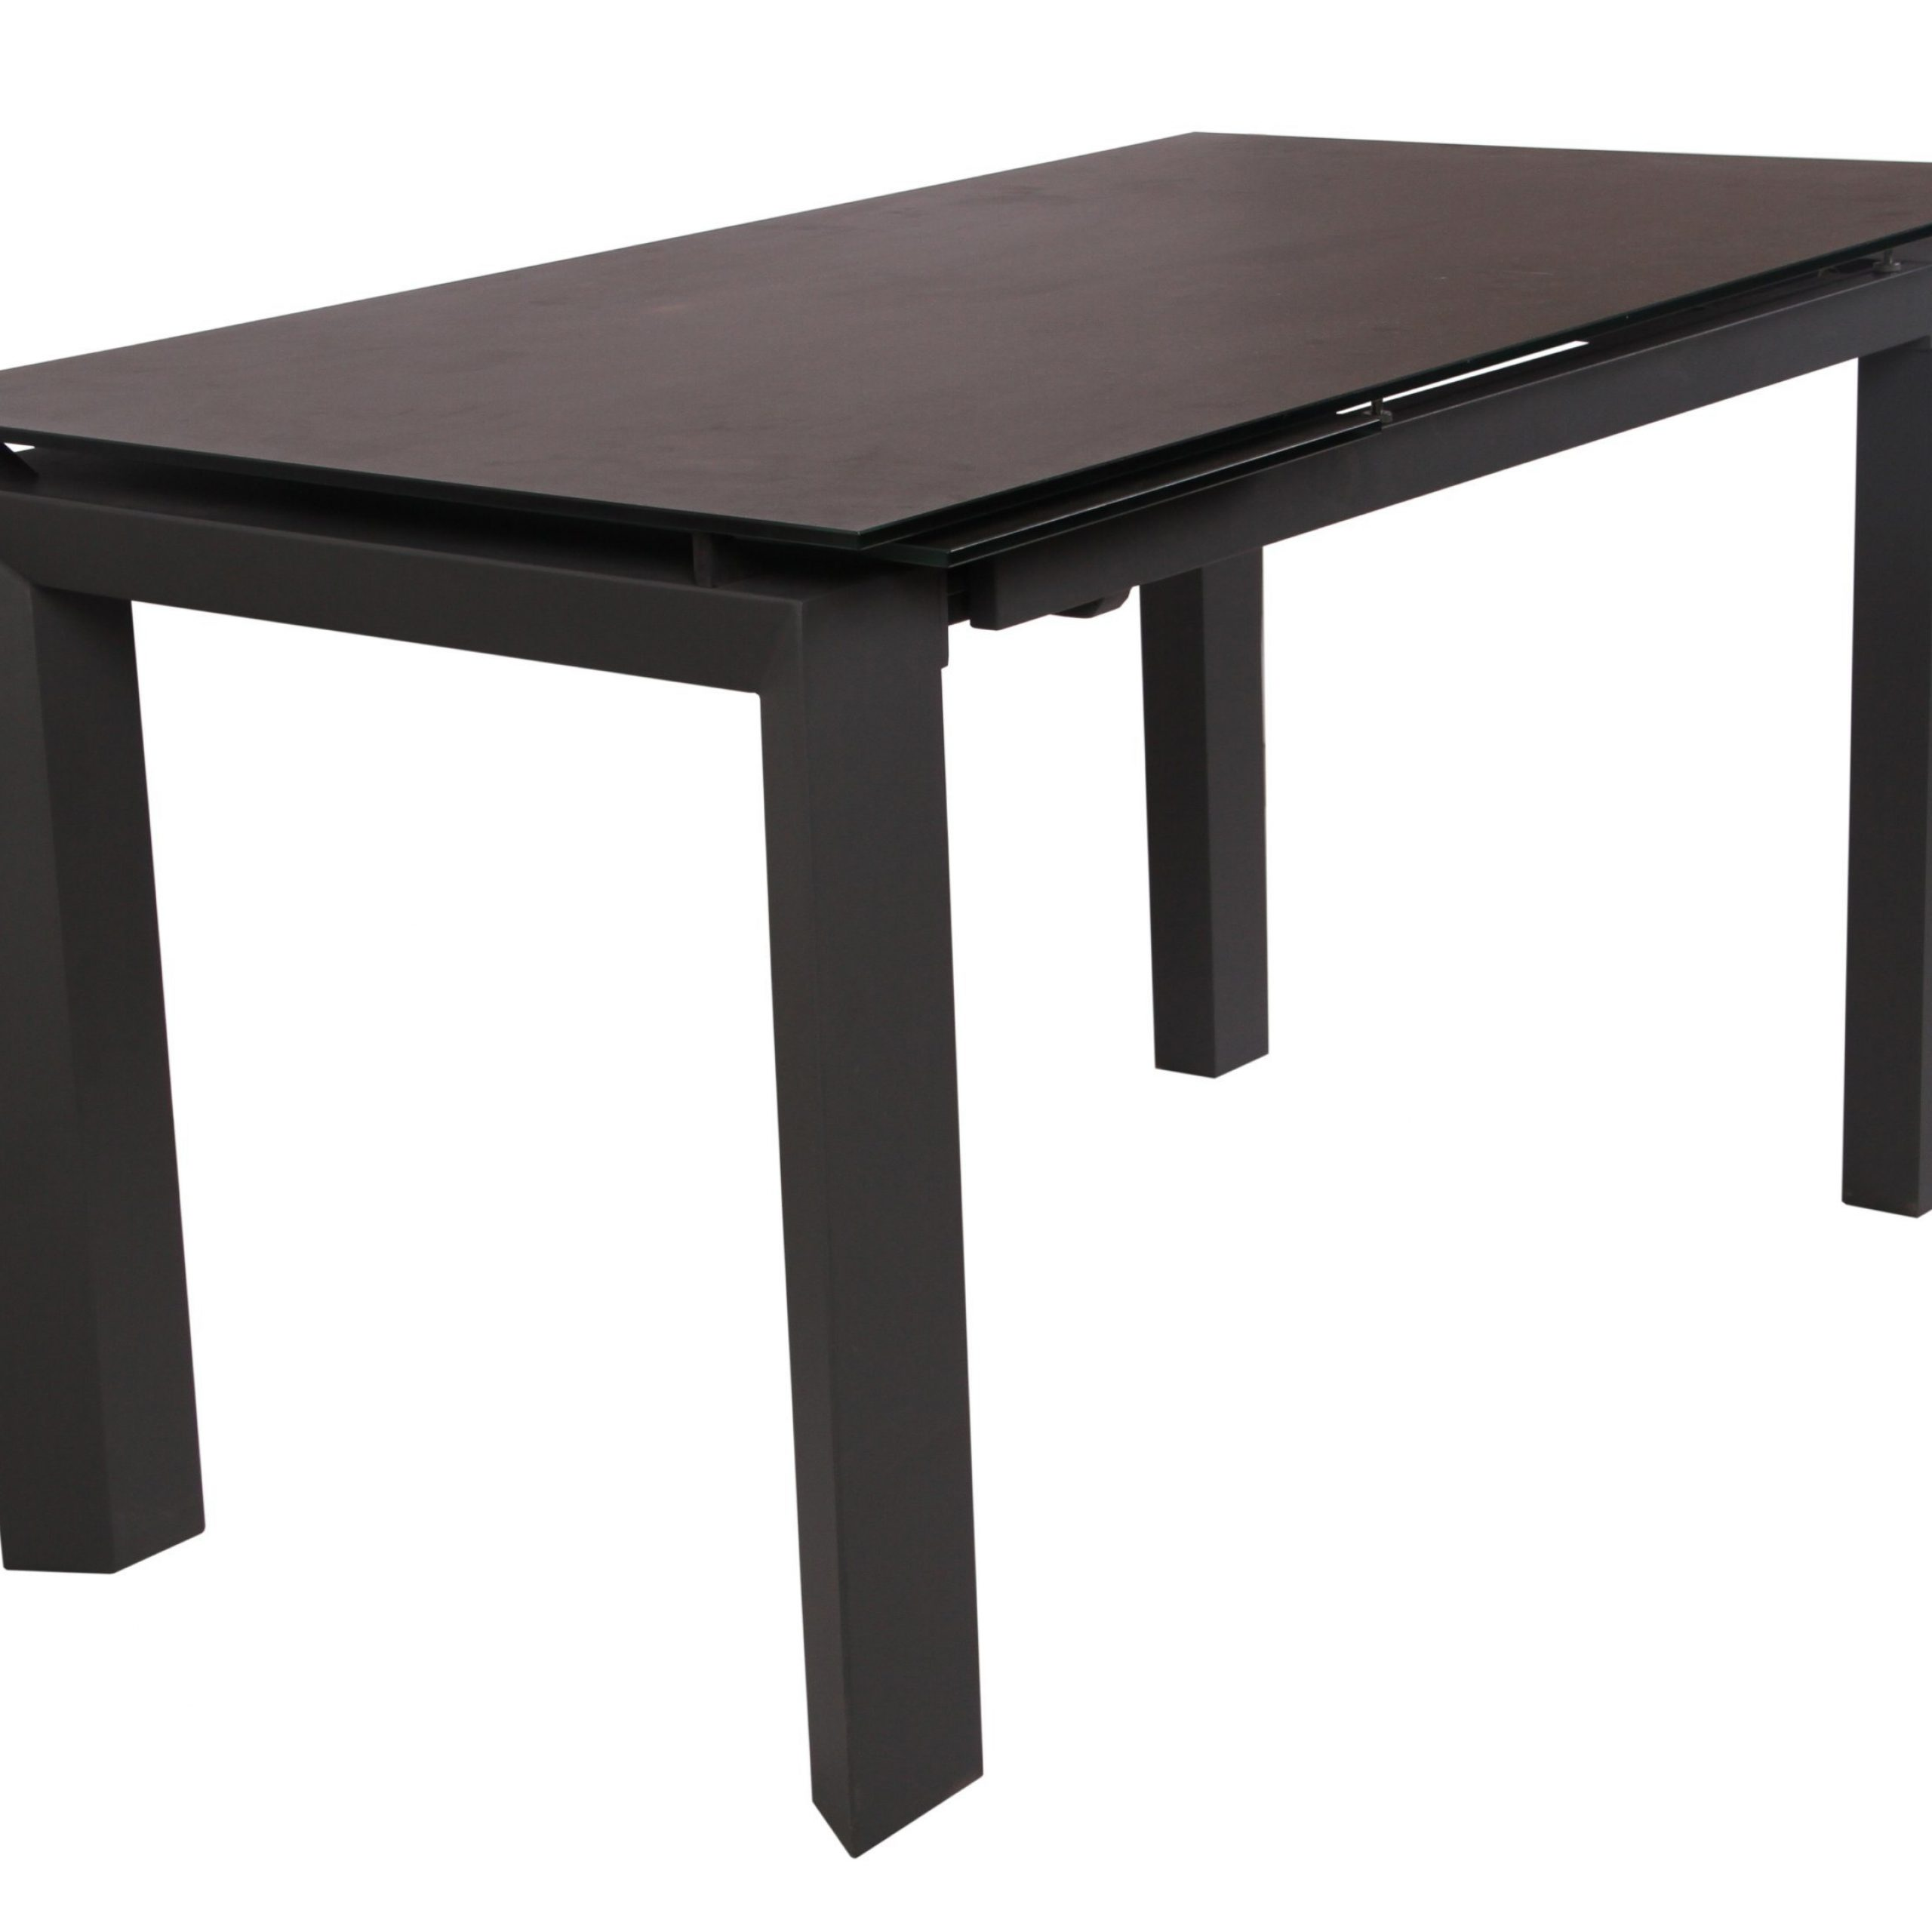 [%[hot Item] 10 15mm High Quality Iron Tempered Glass Dining Table Top With Metal Leg Throughout Most Recently Released Iron Wood Dining Tables With Metal Legs|iron Wood Dining Tables With Metal Legs With 2018 [hot Item] 10 15mm High Quality Iron Tempered Glass Dining Table Top With Metal Leg|2017 Iron Wood Dining Tables With Metal Legs In [hot Item] 10 15mm High Quality Iron Tempered Glass Dining Table Top With Metal Leg|most Current [hot Item] 10 15mm High Quality Iron Tempered Glass Dining Table Top With Metal Leg Pertaining To Iron Wood Dining Tables With Metal Legs%] (View 12 of 30)